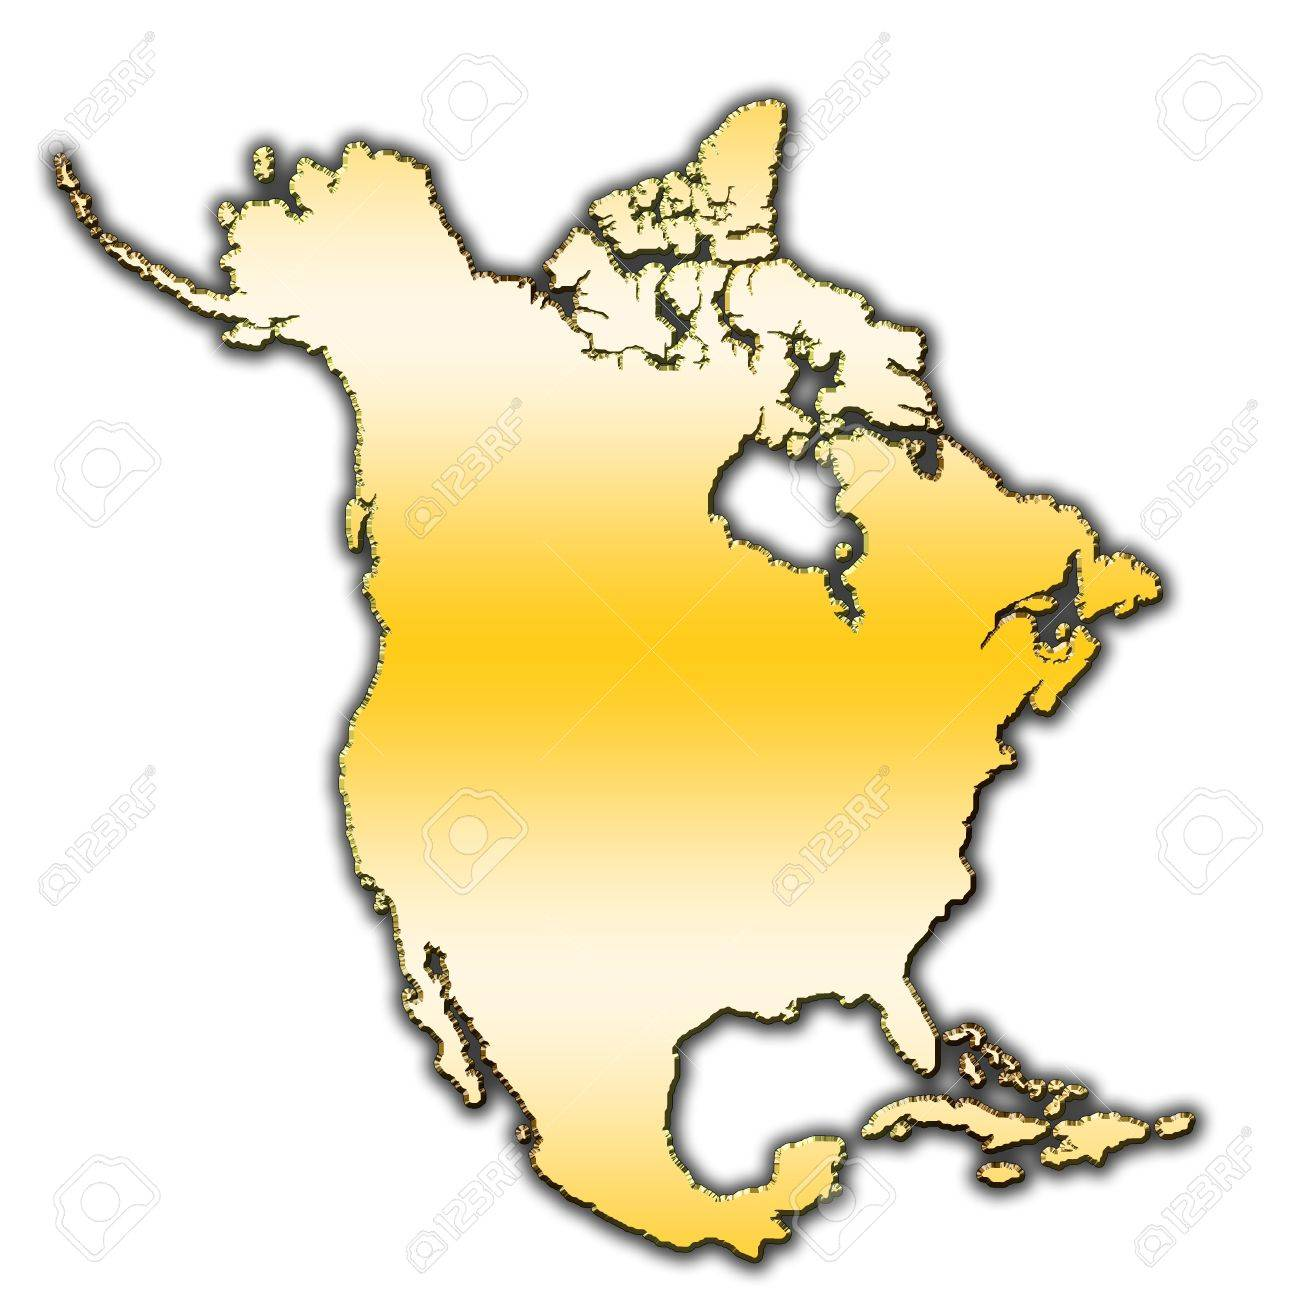 Outline Map Of North America Covered With Gradient Stock Photo ...